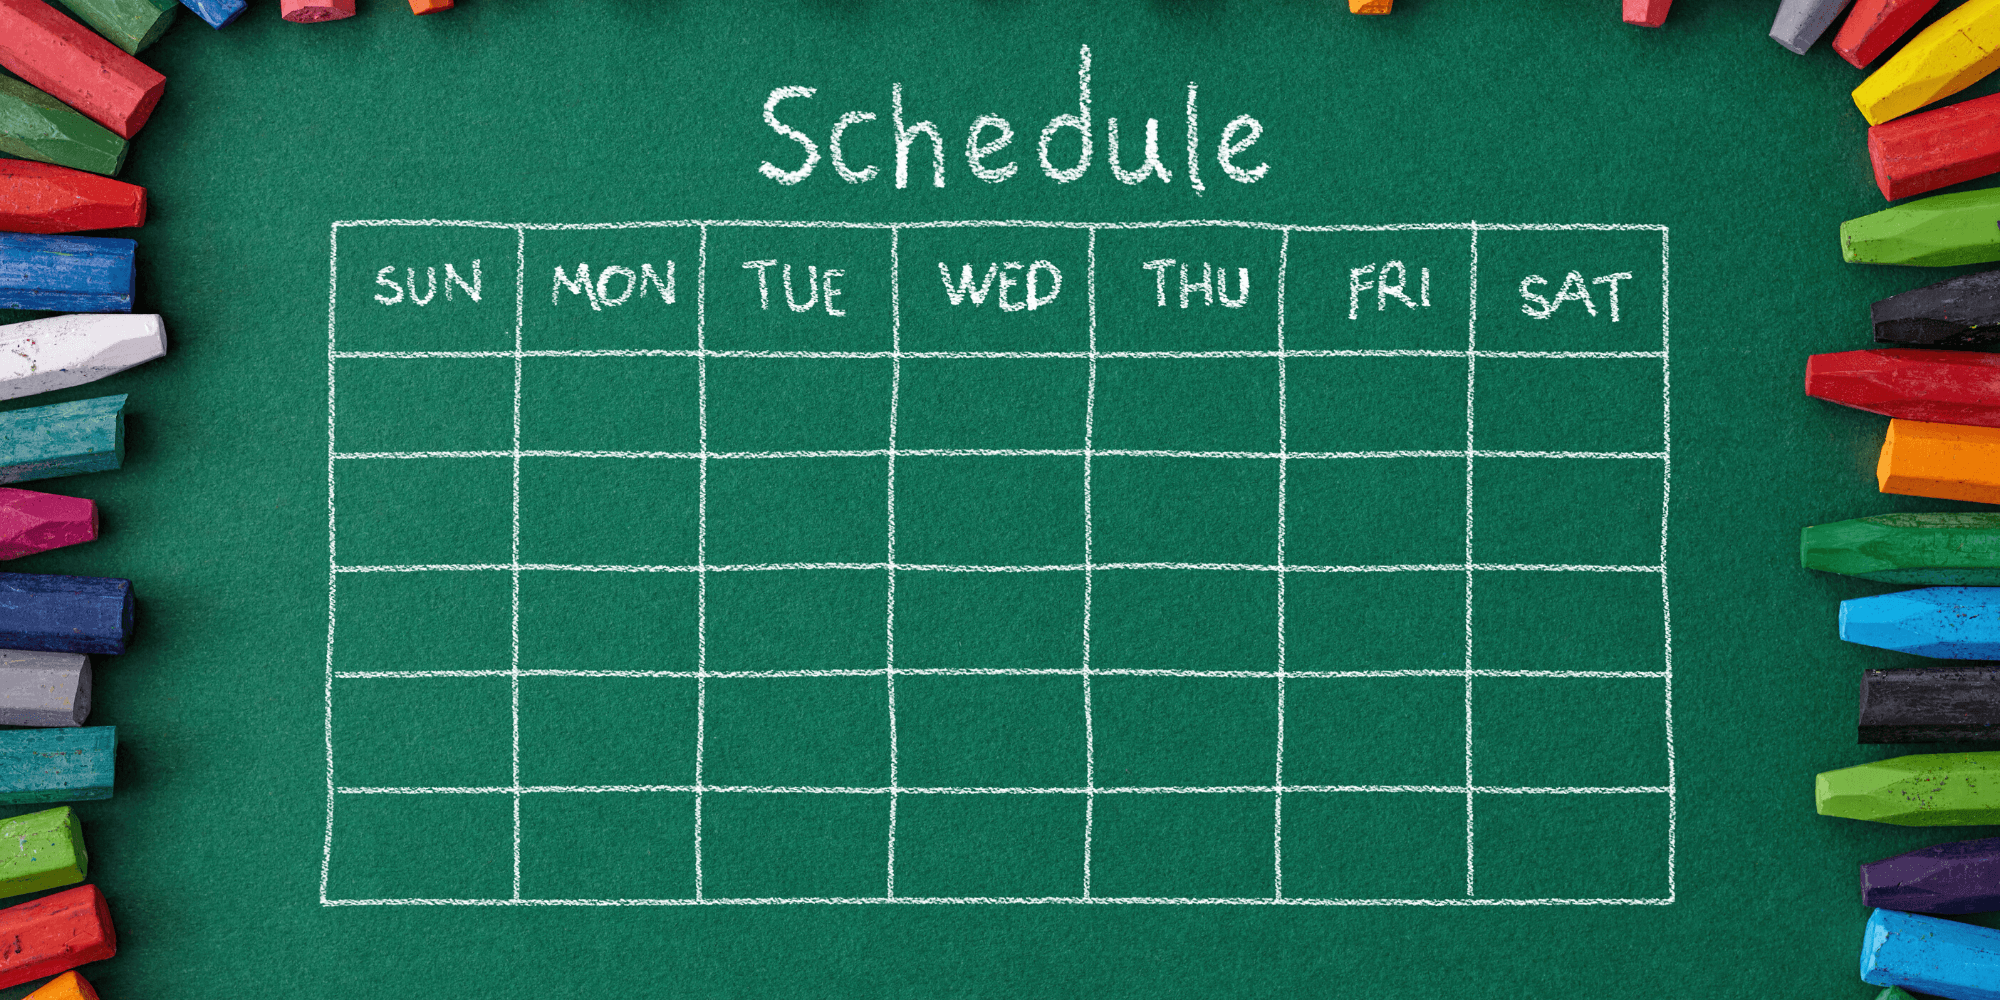 Scheduling on a chalk board